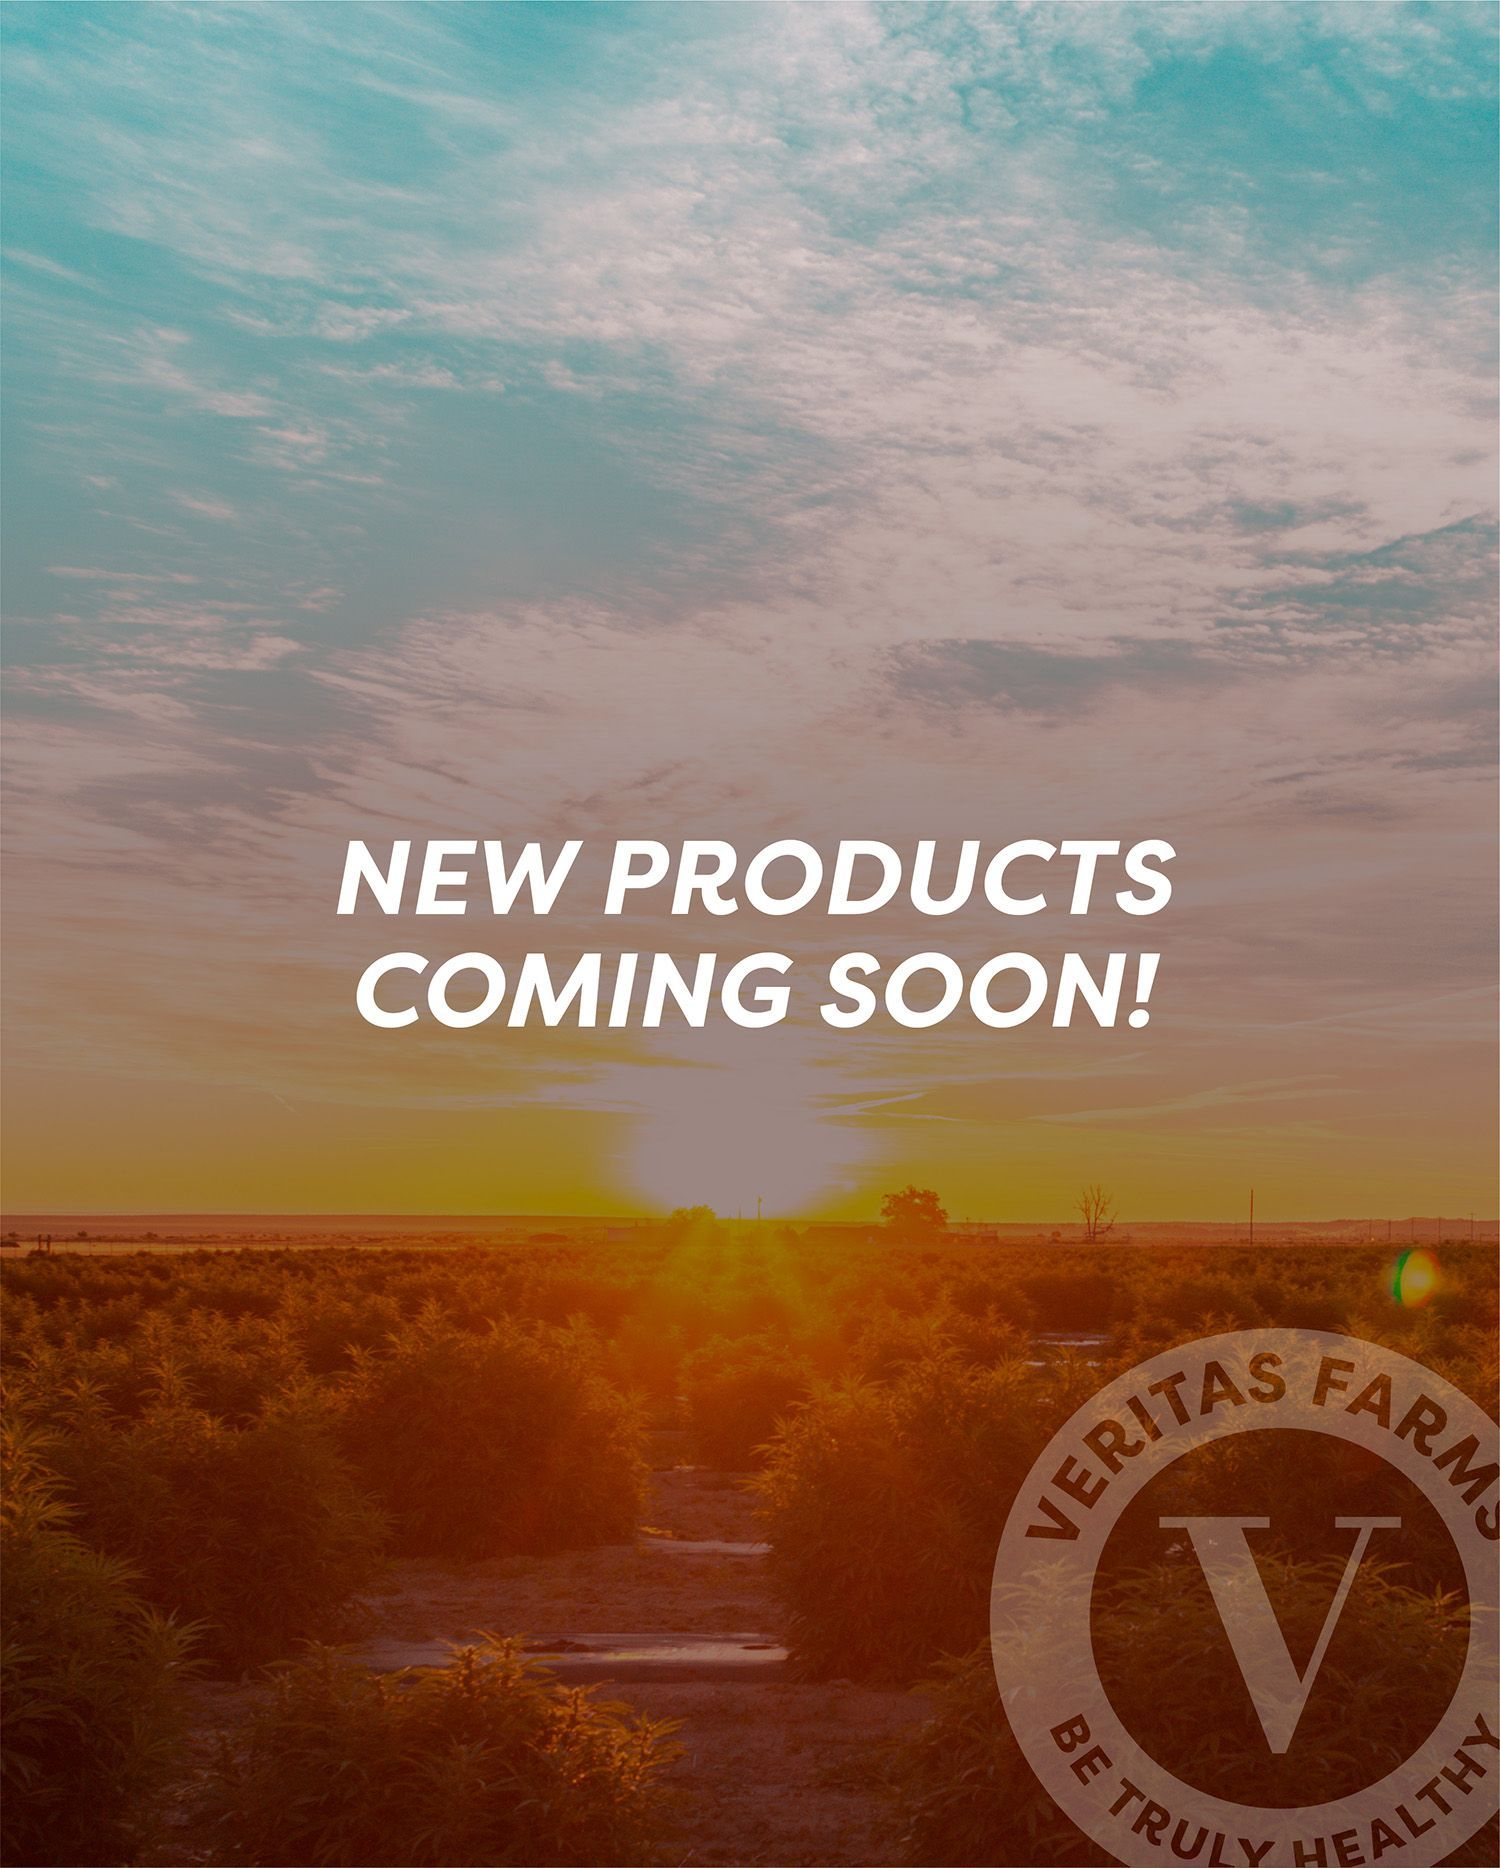 new cbd products coming soon